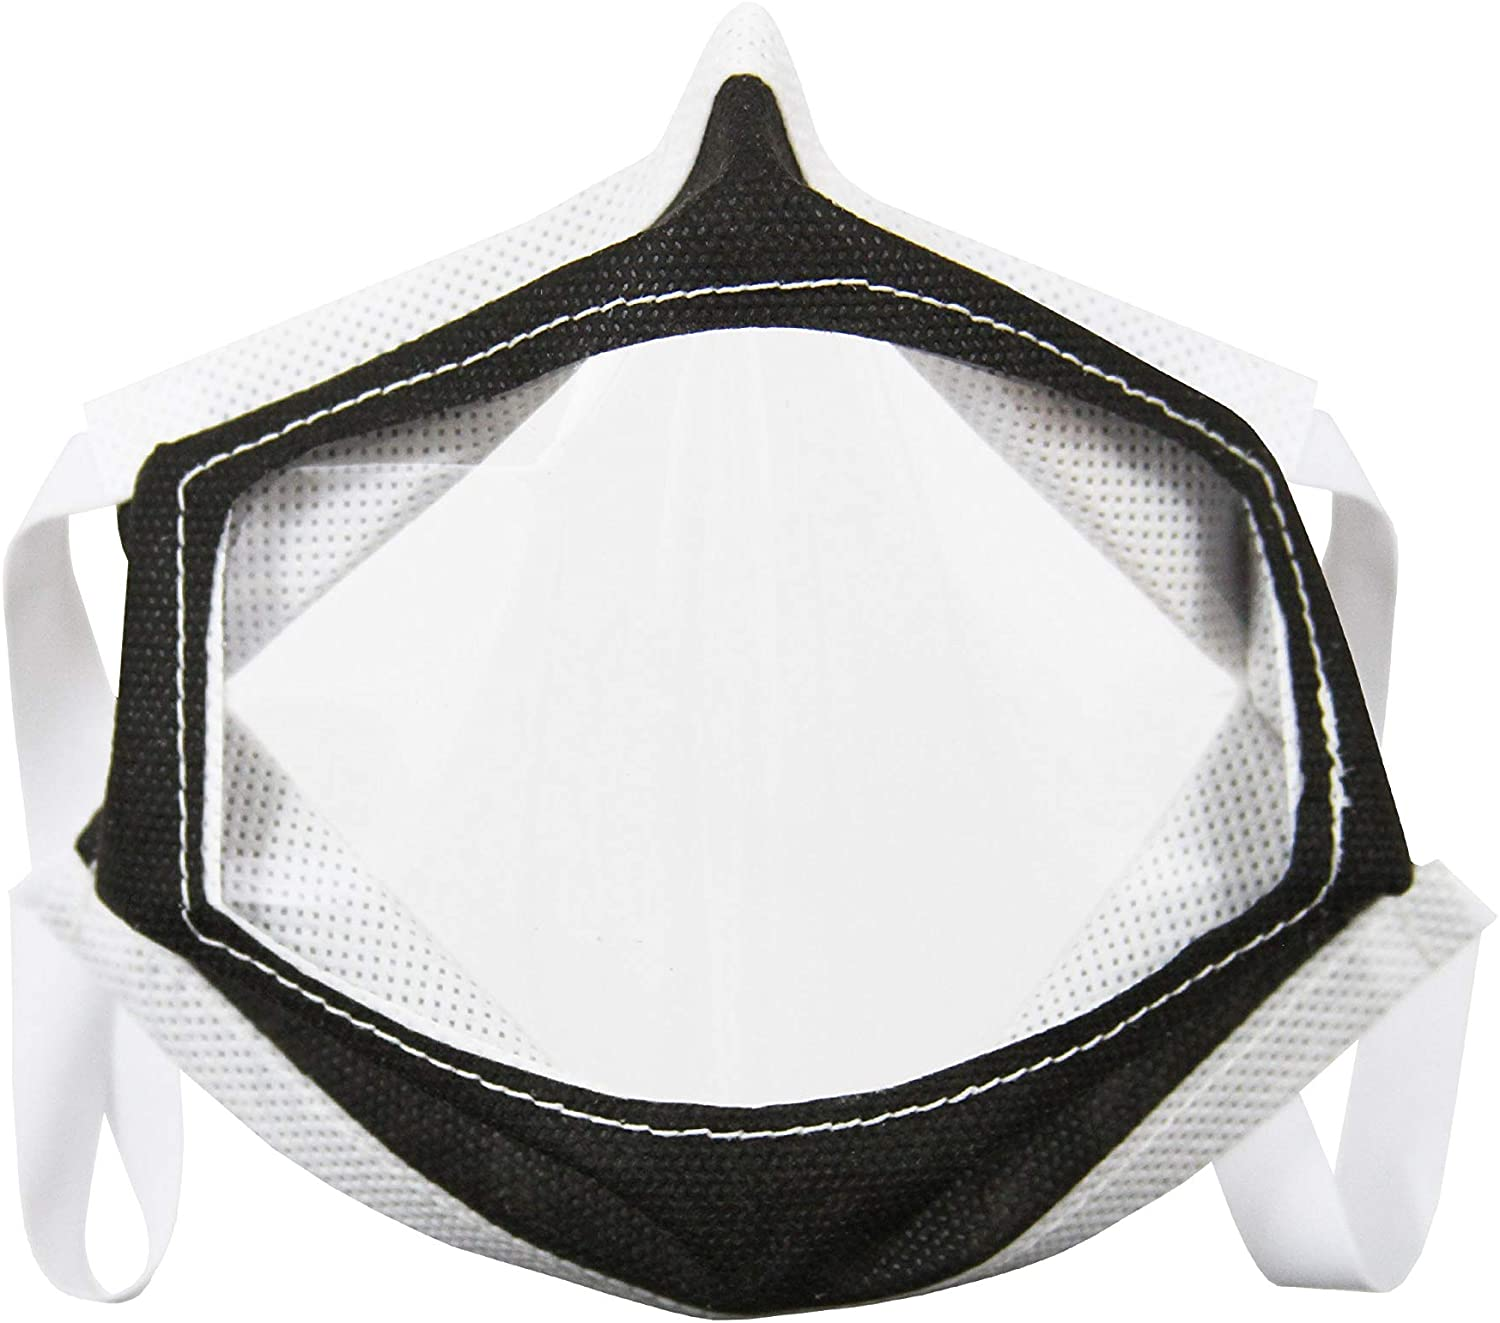 XPRS Clear Mouth Window Mask made from Reusable and Machine Washable Polypropylene, Black, XL